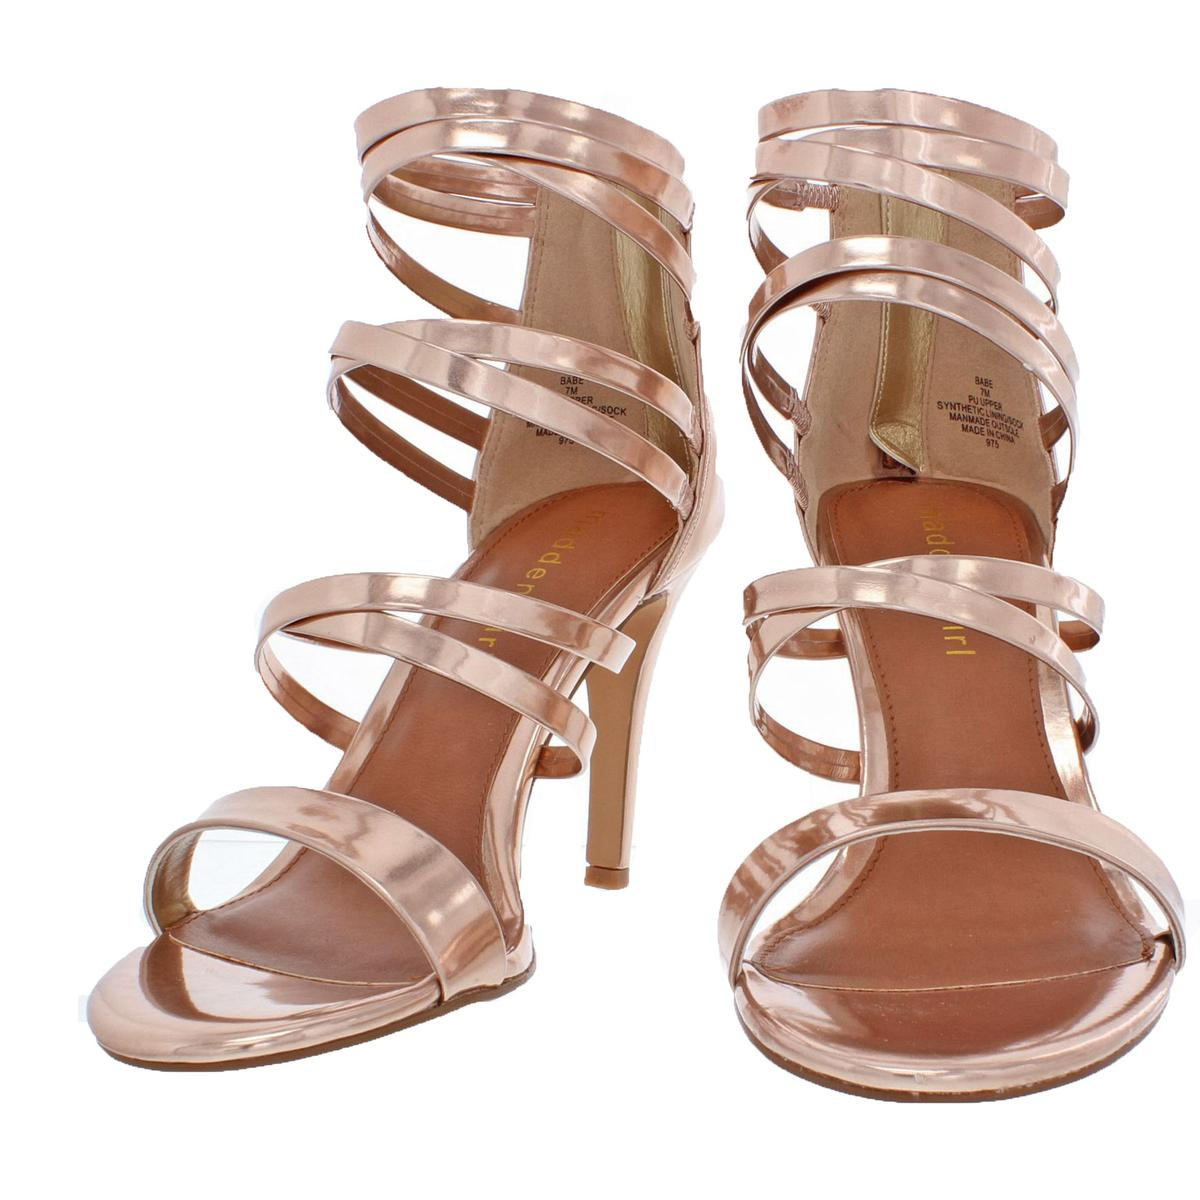 f097398299f Details about Madden Girl by Steve Madden Womens Babe Metallic Strappy  Sandals Heels BHFO 9082